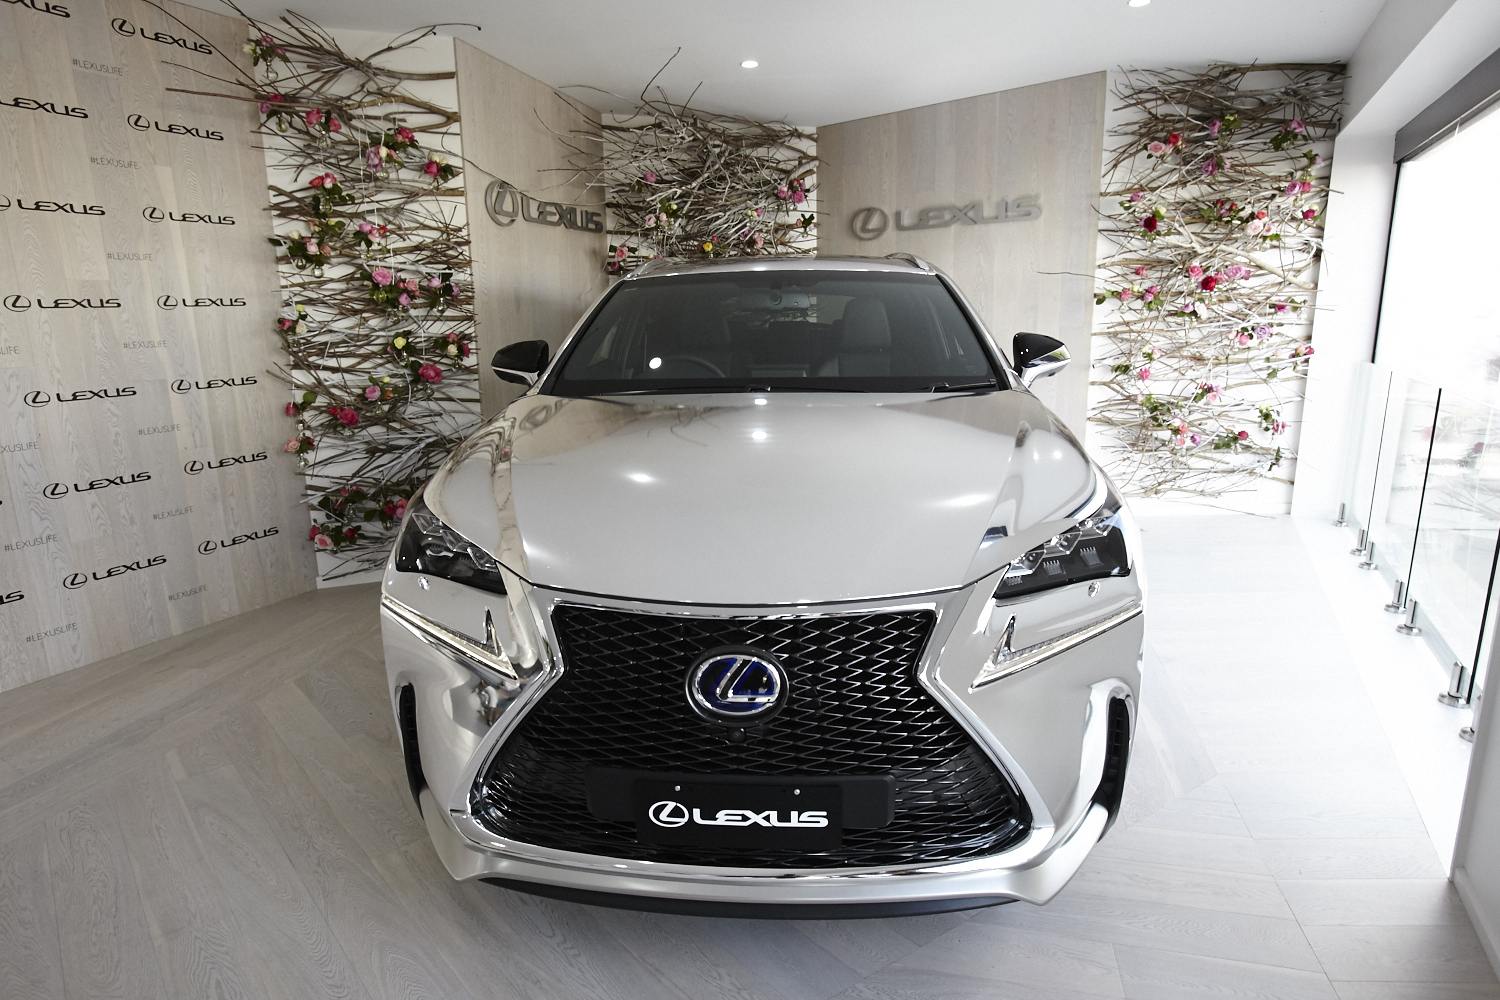 Lexus NX at the entry to the pavilion. Image courtesy Chloe Paul and Lexus Australia.